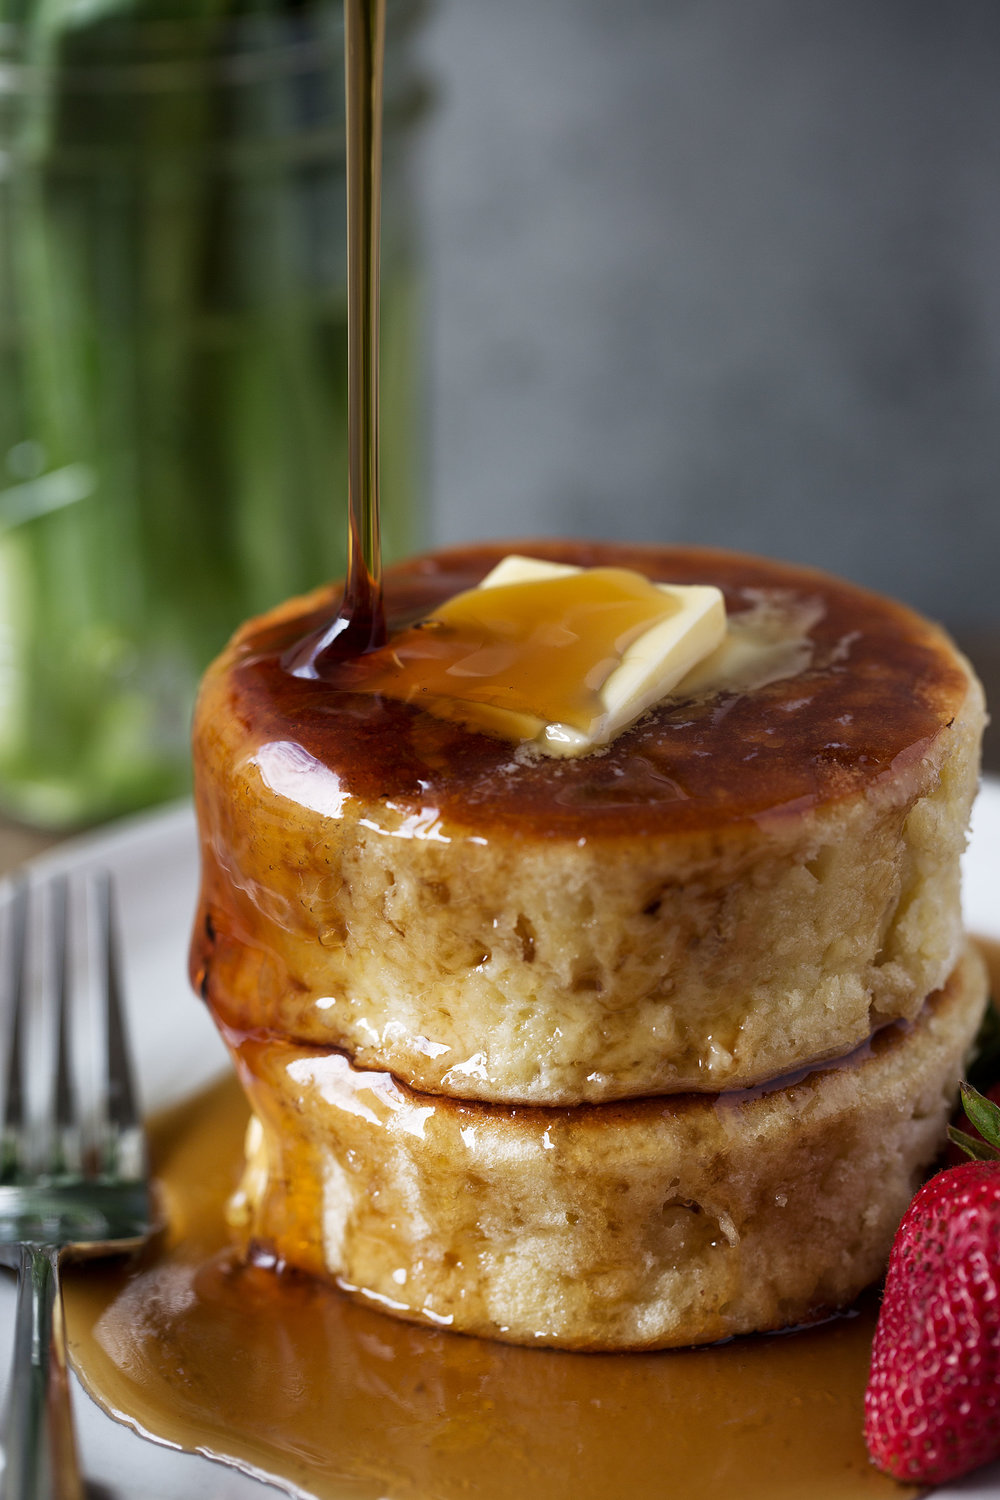 Japanese-style Soufflé Pancakes covered in syrup cooking with cocktail rings